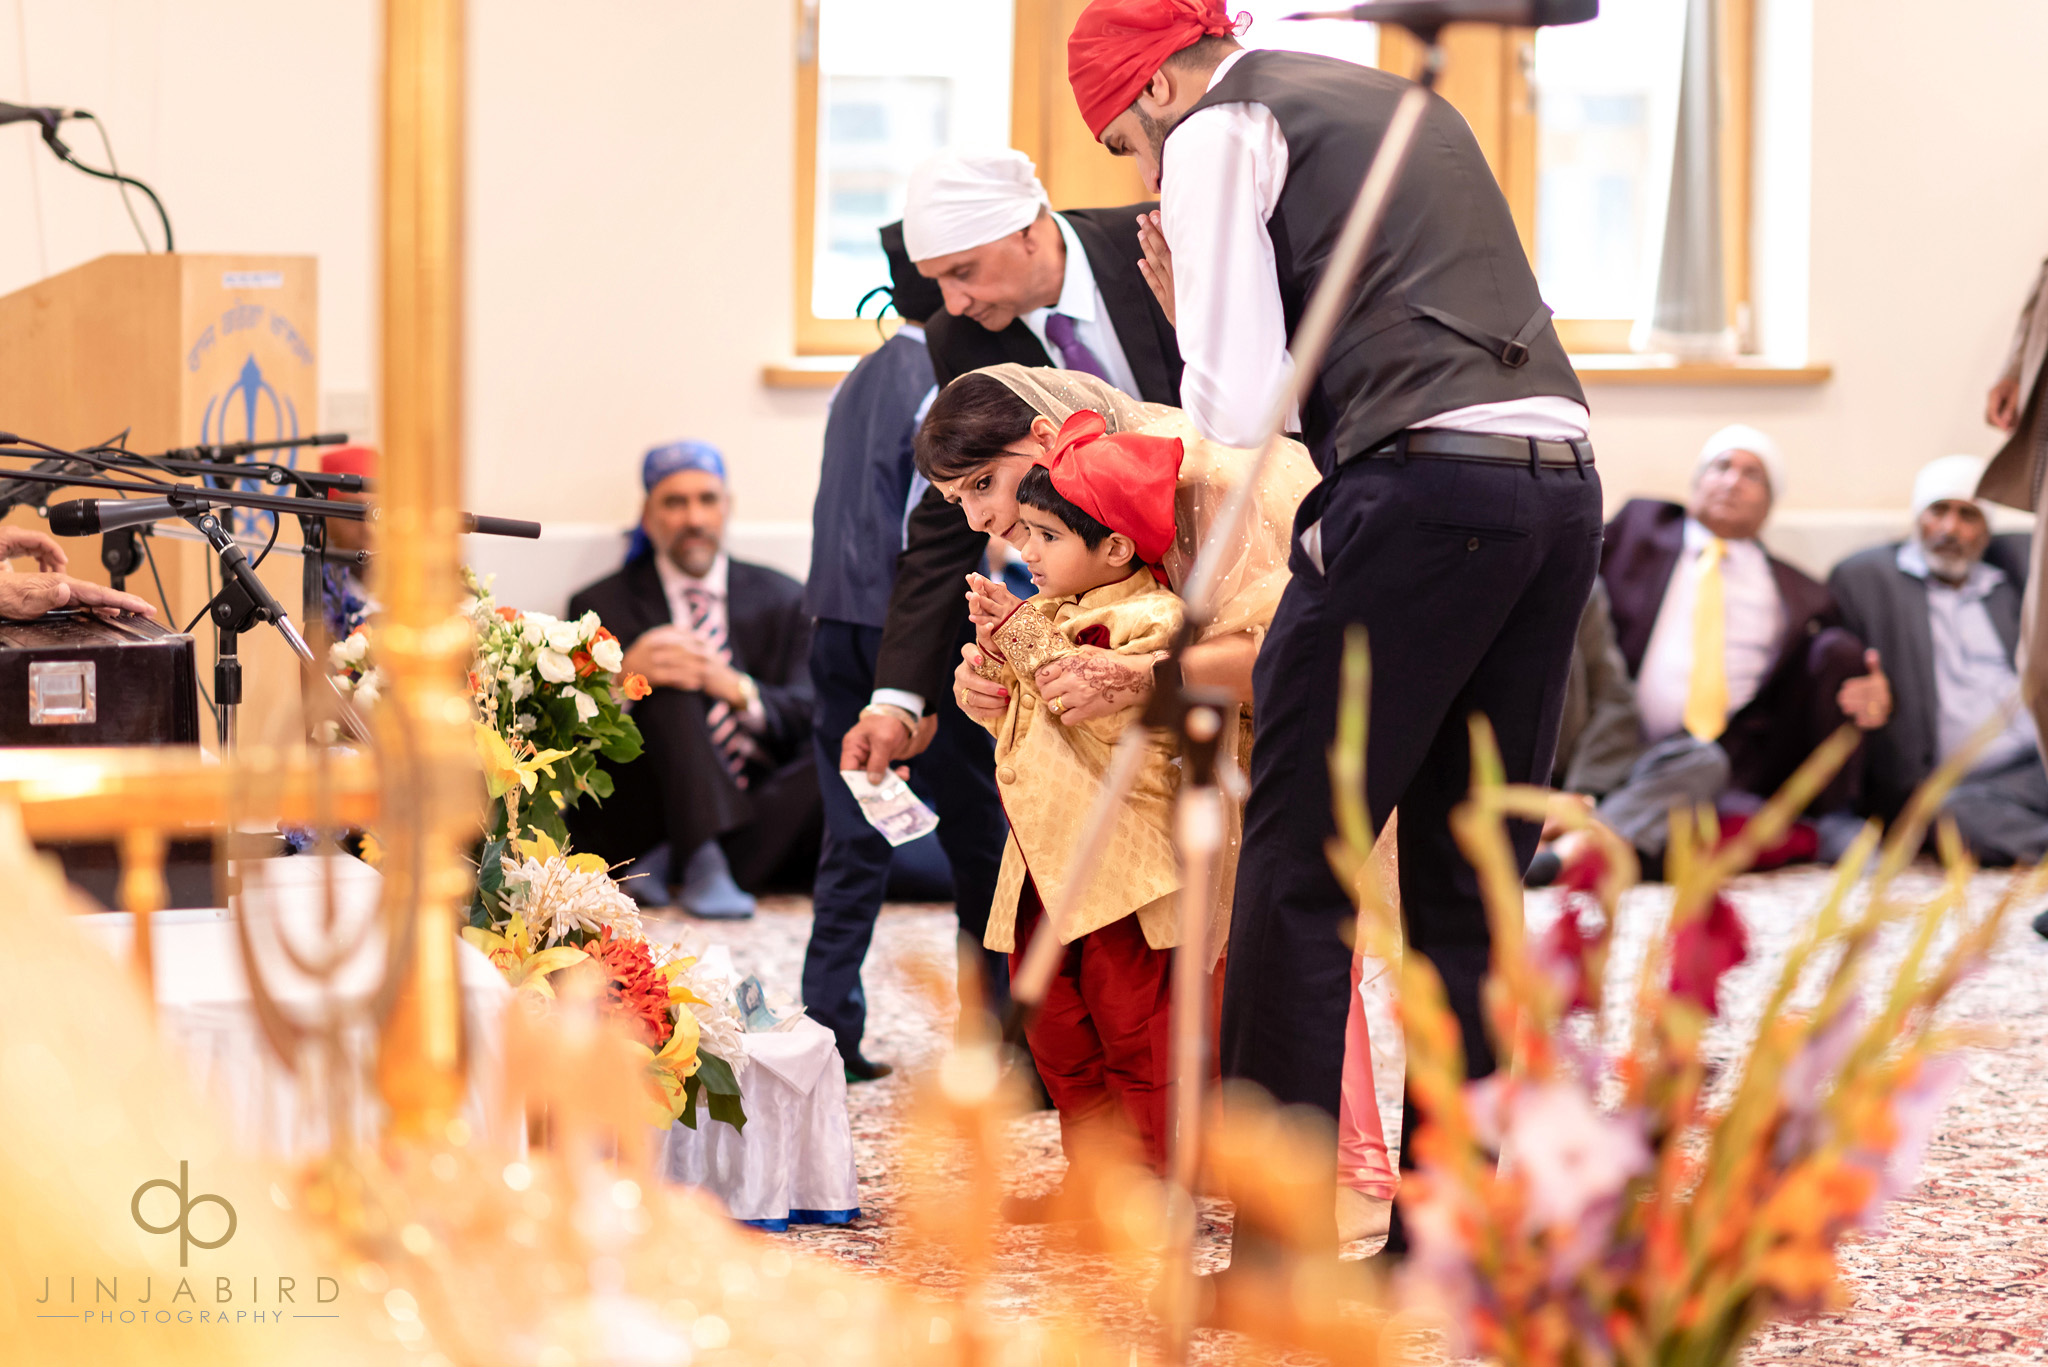 small child at wedding